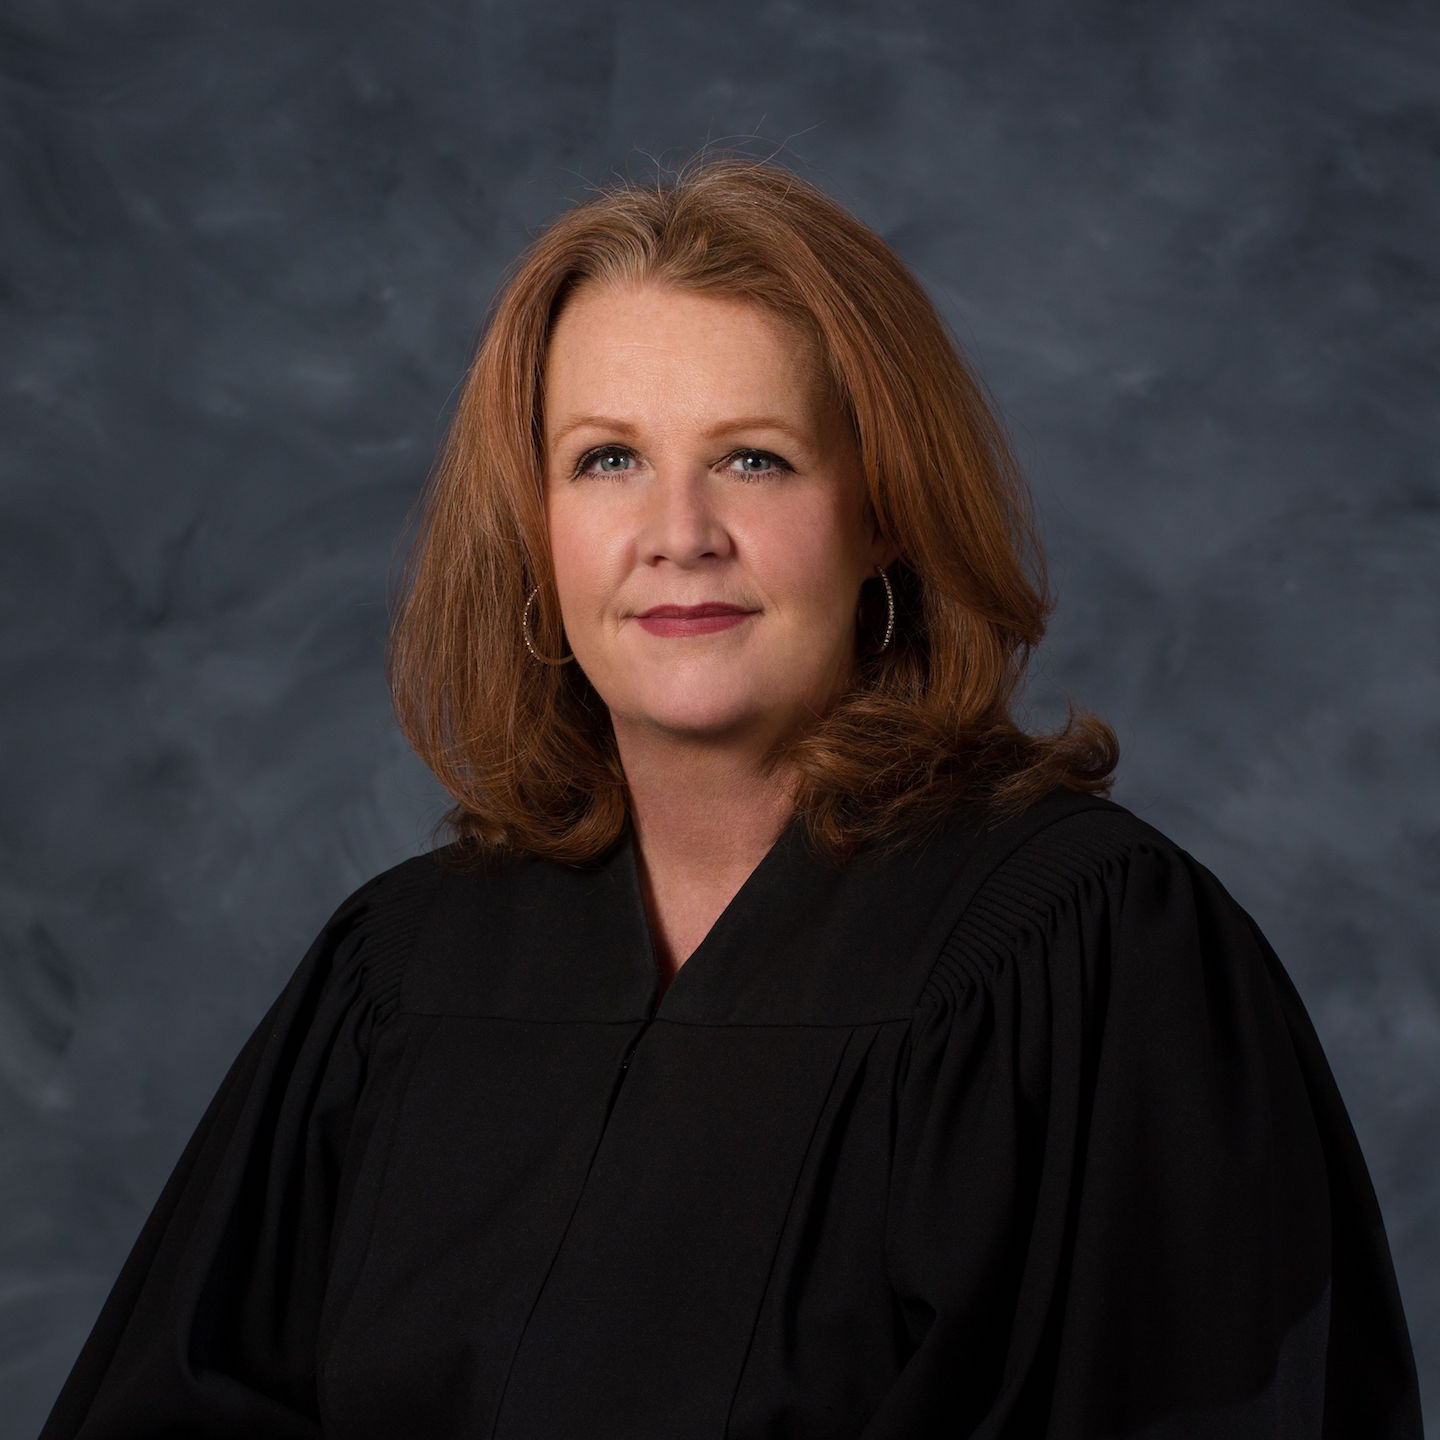 Judge Erin P. DeLabio